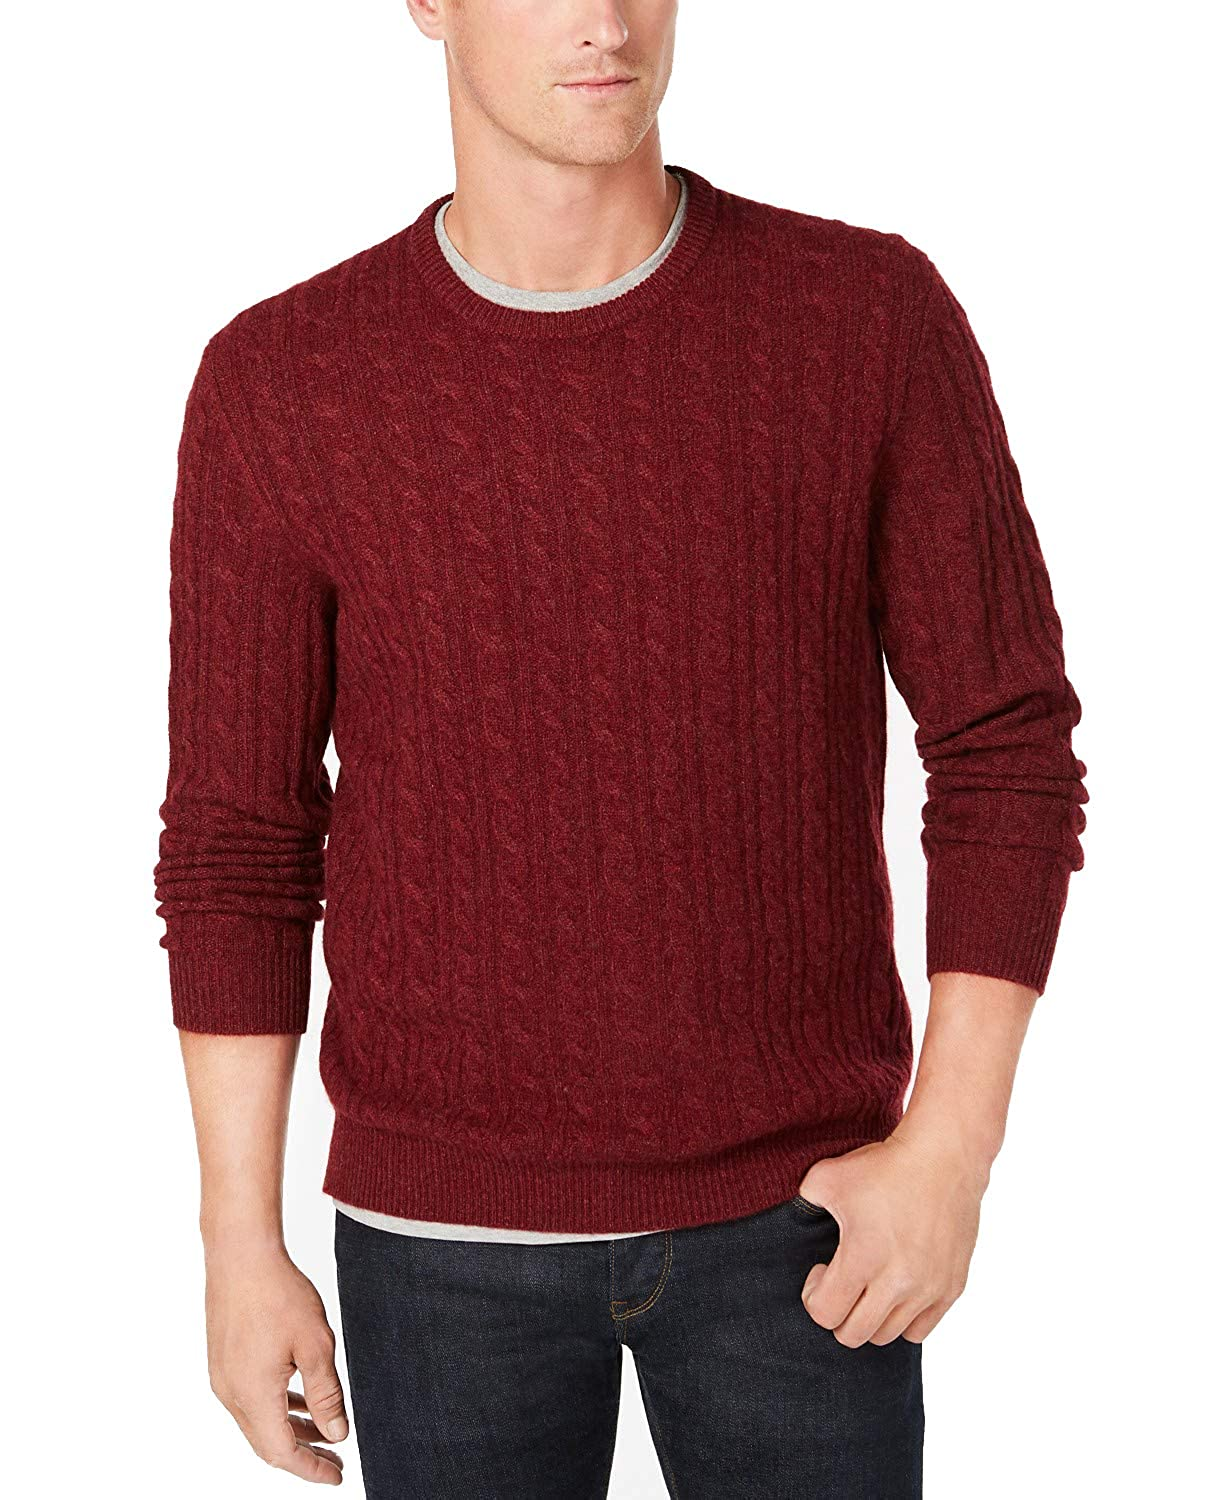 Club Room Mens Cable-Knit 100/% Cashmere Crewneck Sweater